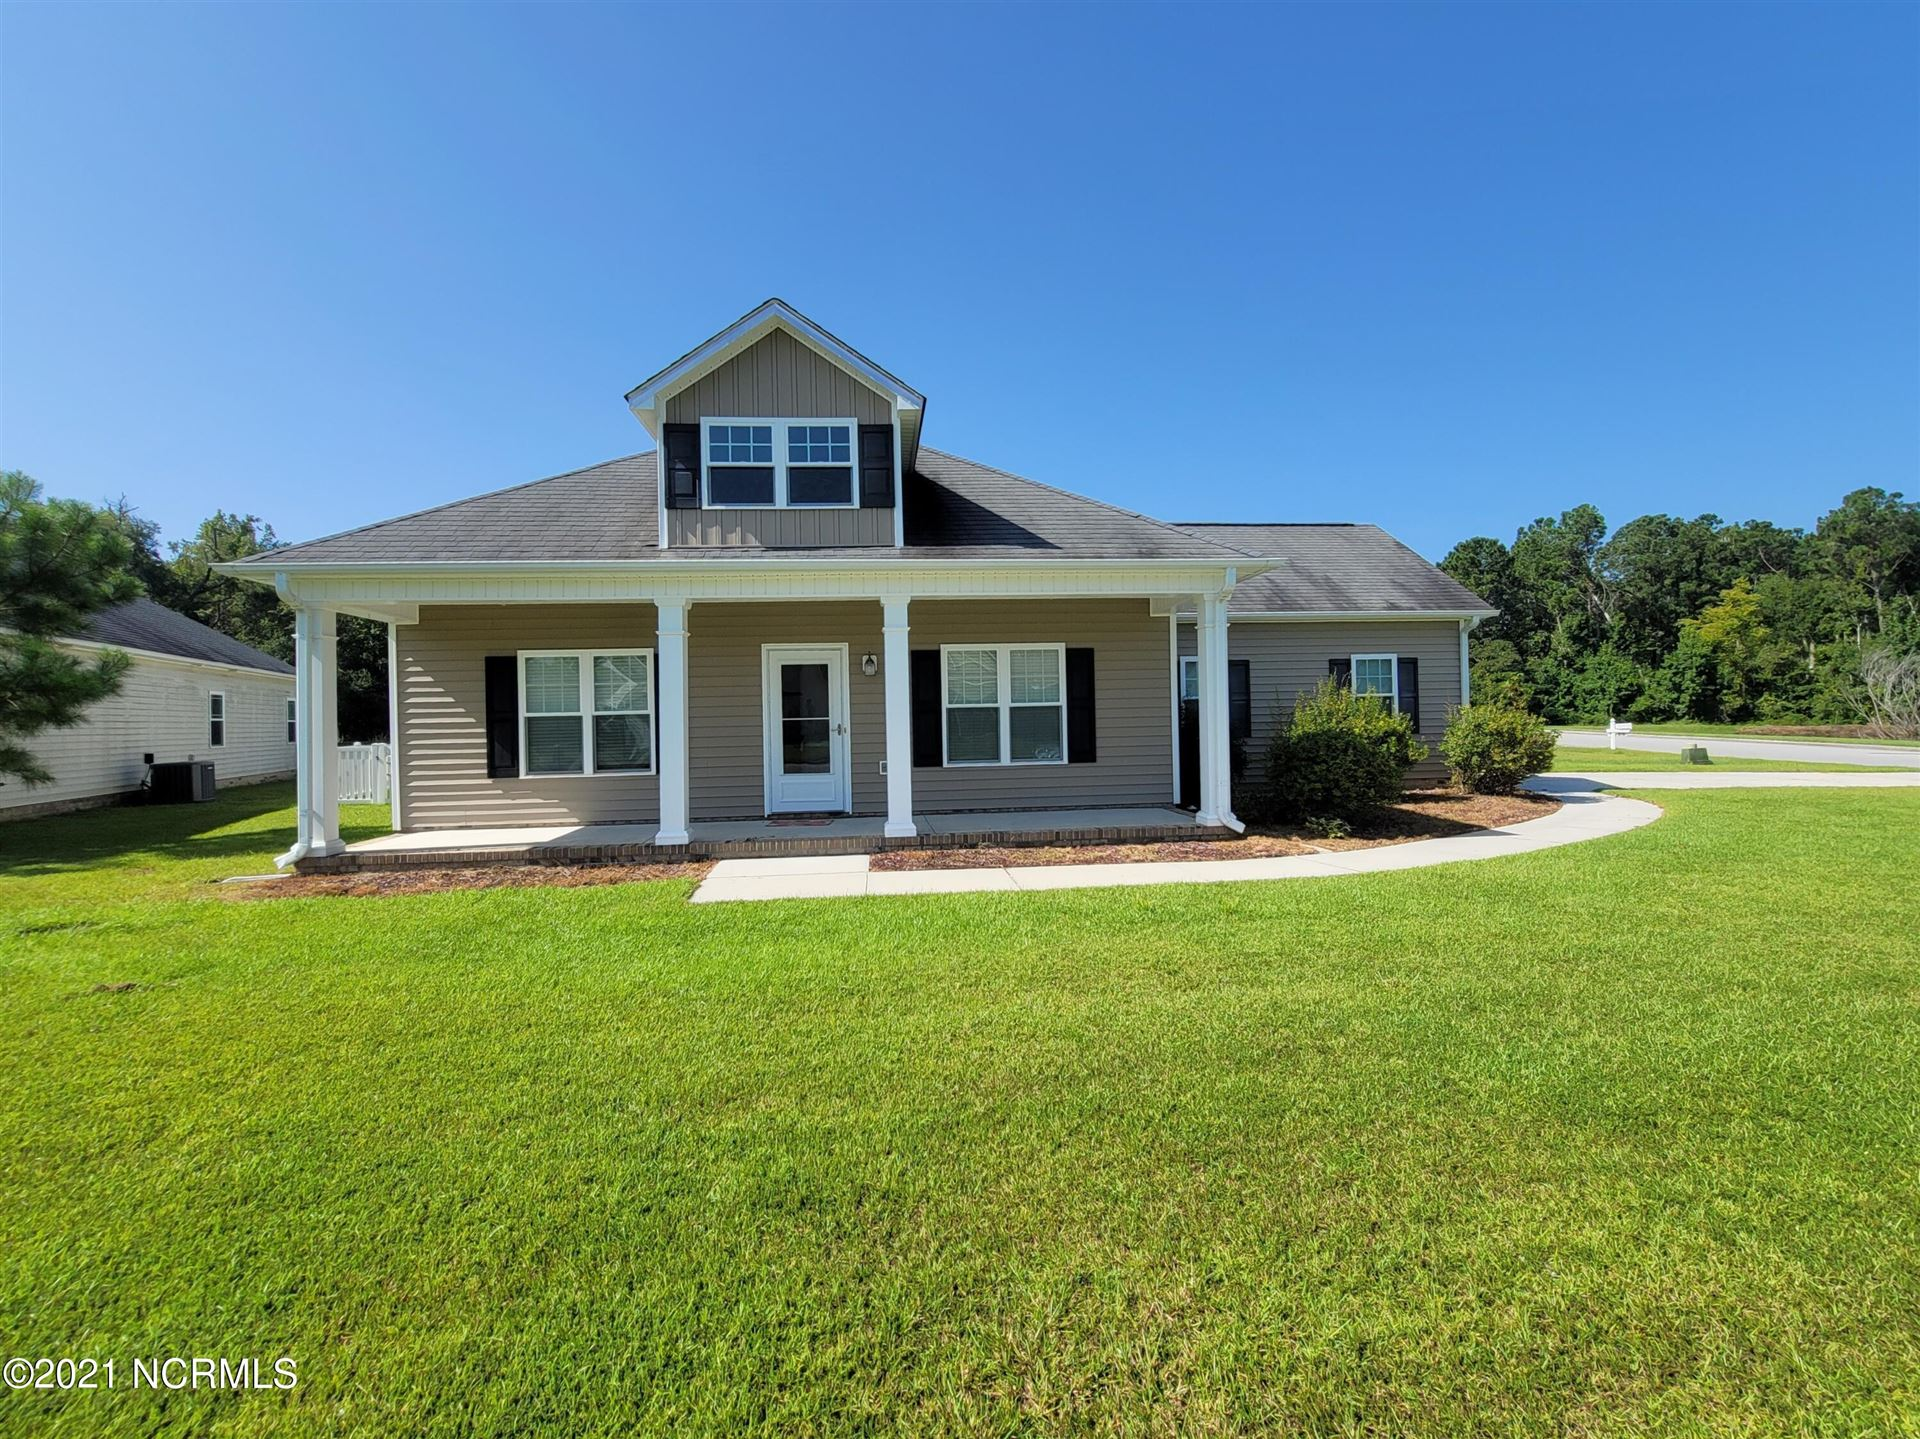 Photo of 233 Station House Road, New Bern, NC 28562 (MLS # 100288367)